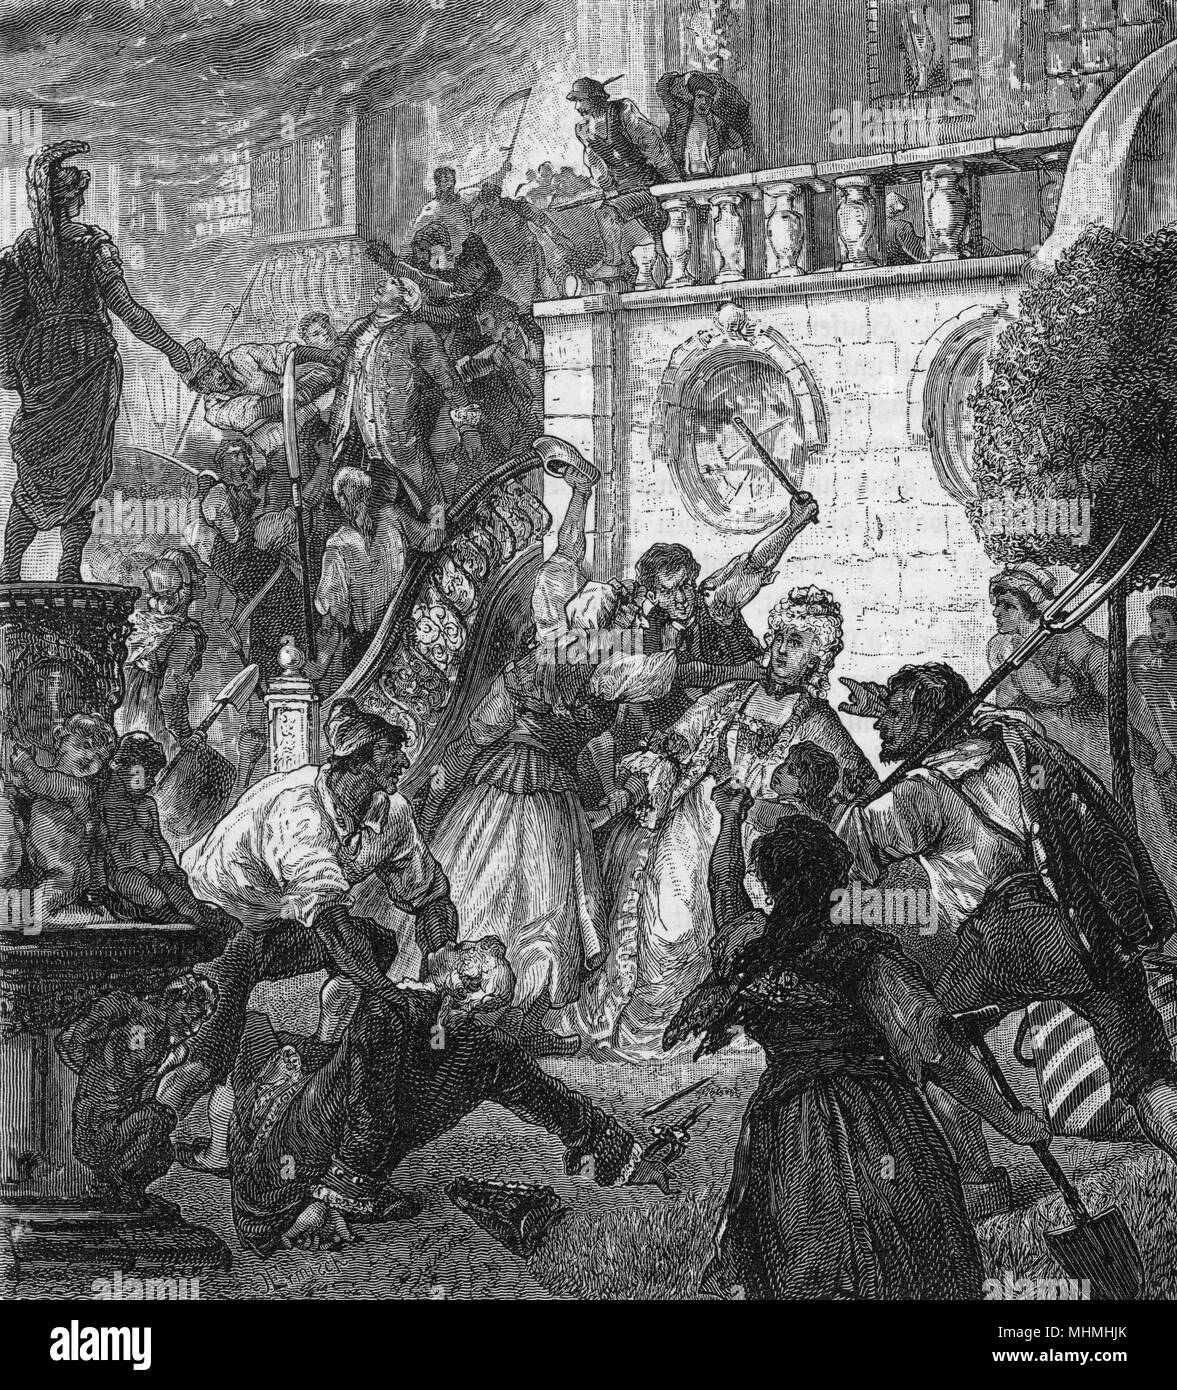 Peasants attack aristocrats in their chateau, murdering, looting and destroying       Date: circa 1791 - Stock Image